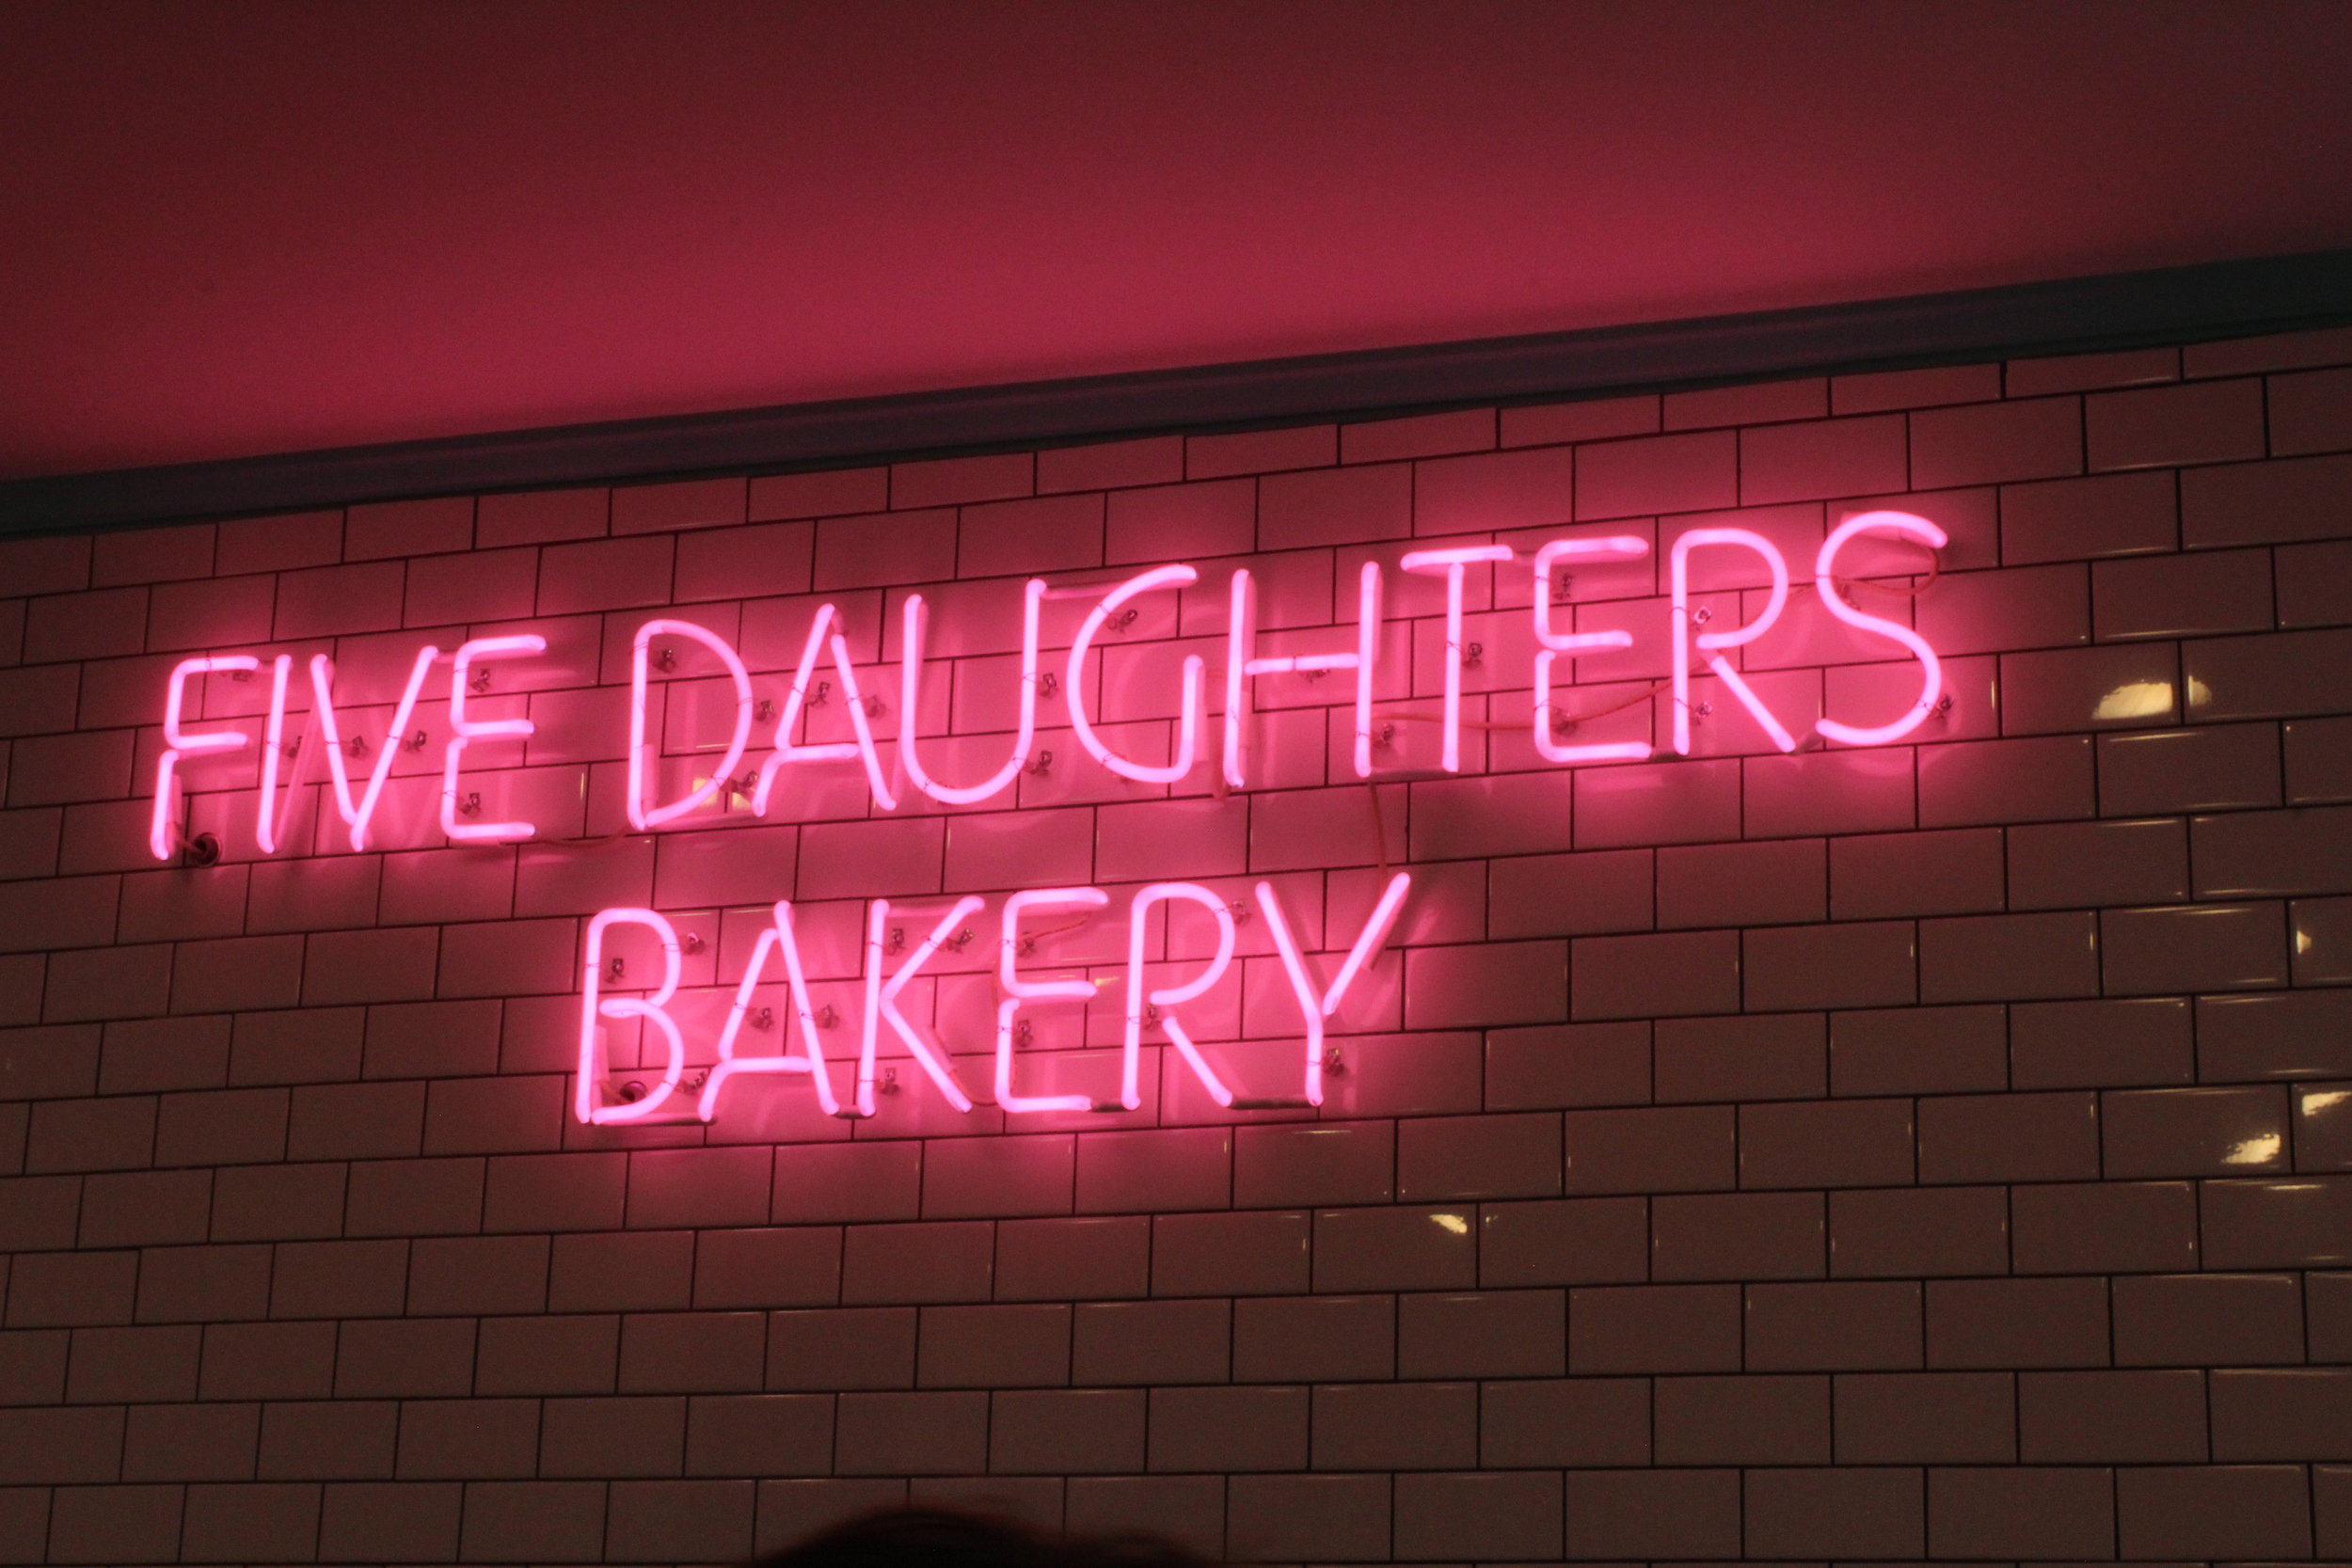 Great Kid Friendly Places to Visit Nashville like Five Daughters Bakery